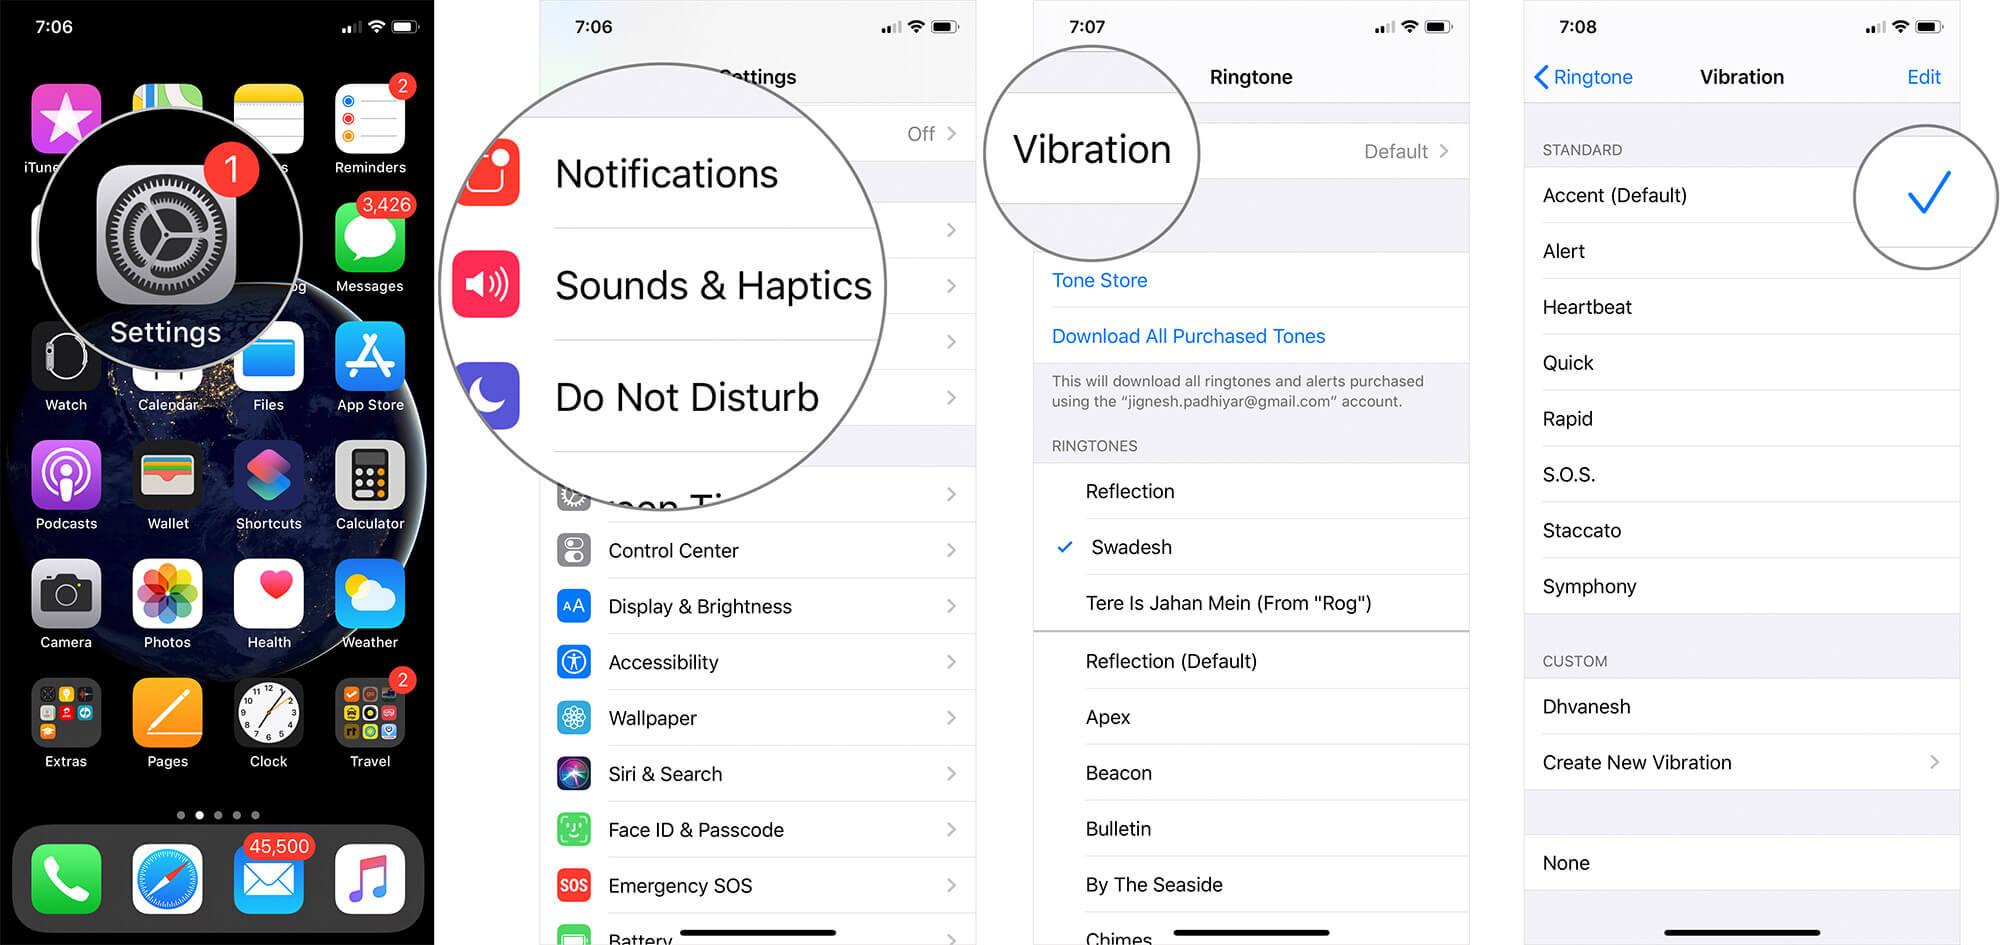 Set Vibration Pattern for Ringtone on iPhone